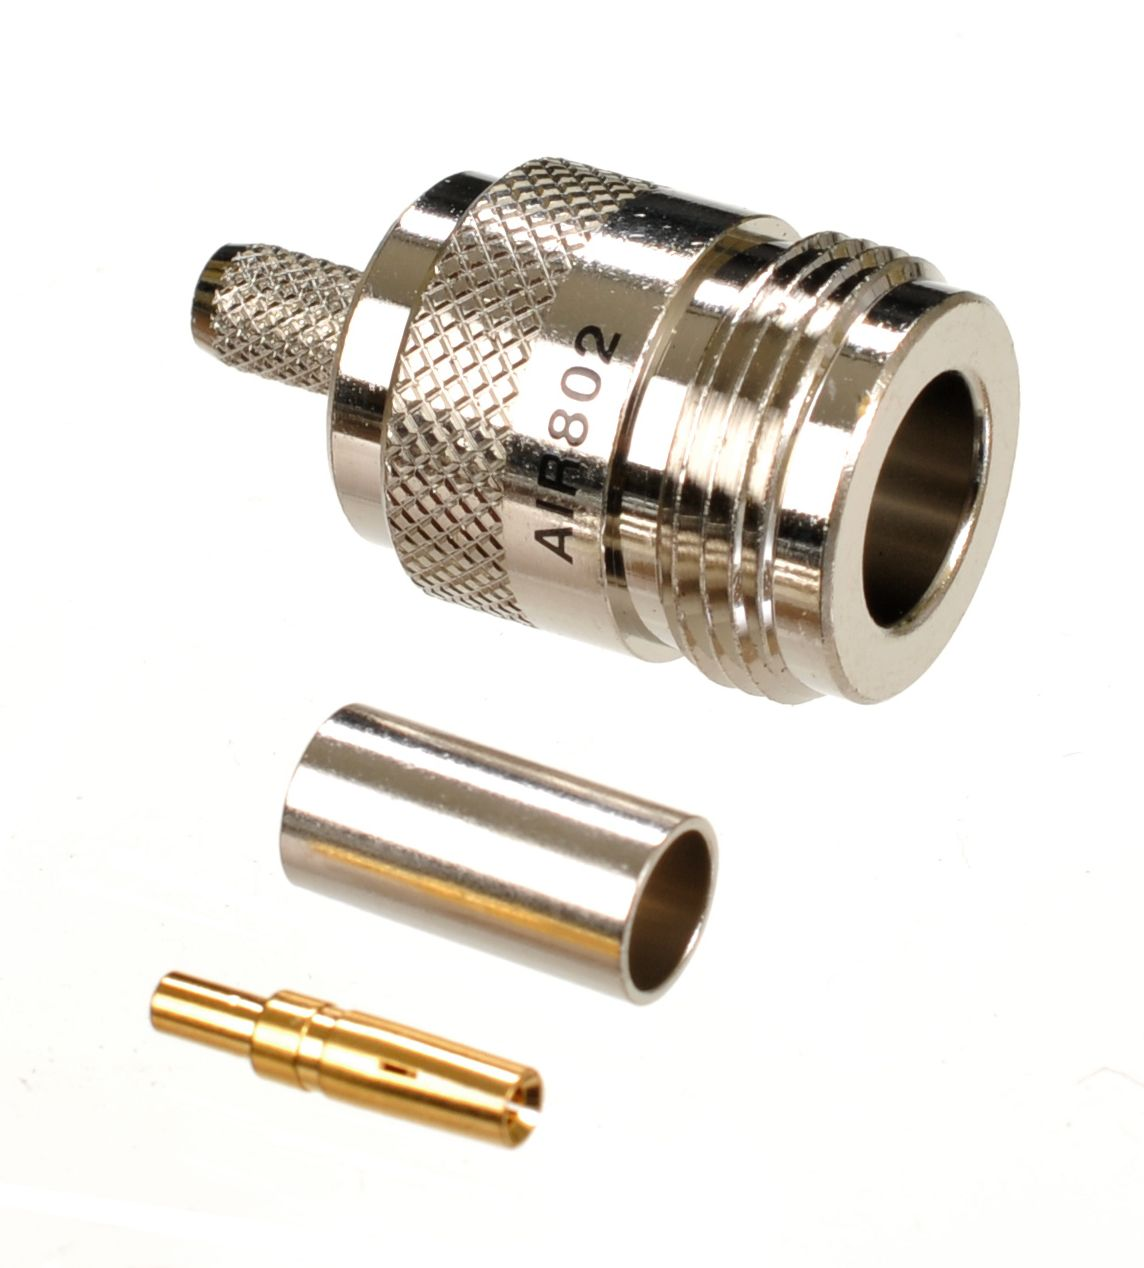 N jack or female connector for AIR802 CA195, Times Microwave LMR195, RG58 and similar sized cables.